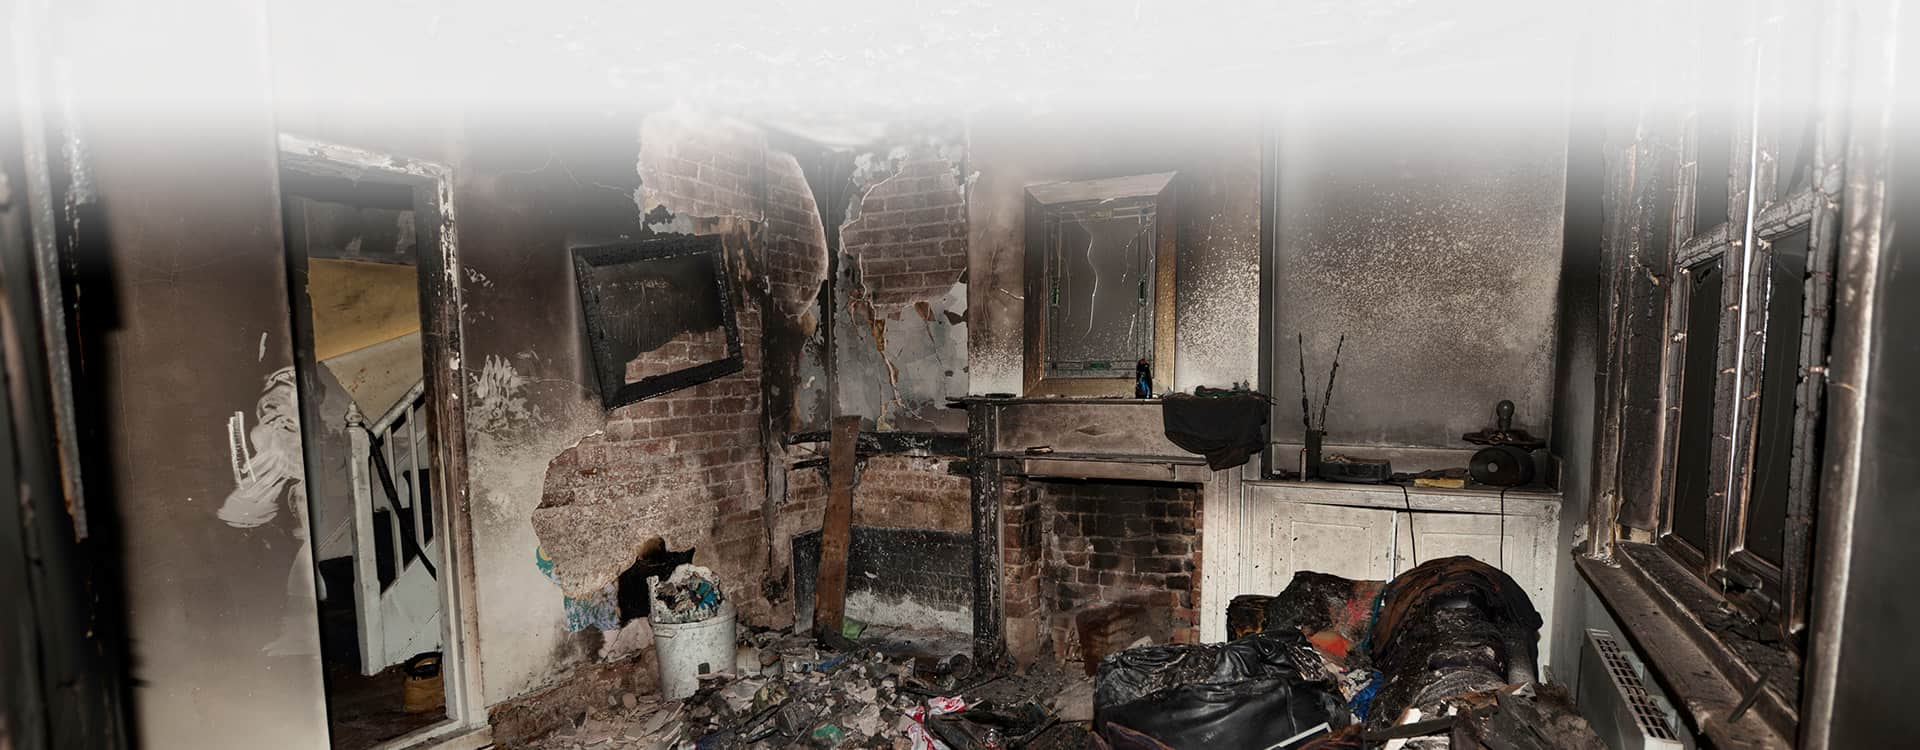 smoke and fire damage in home